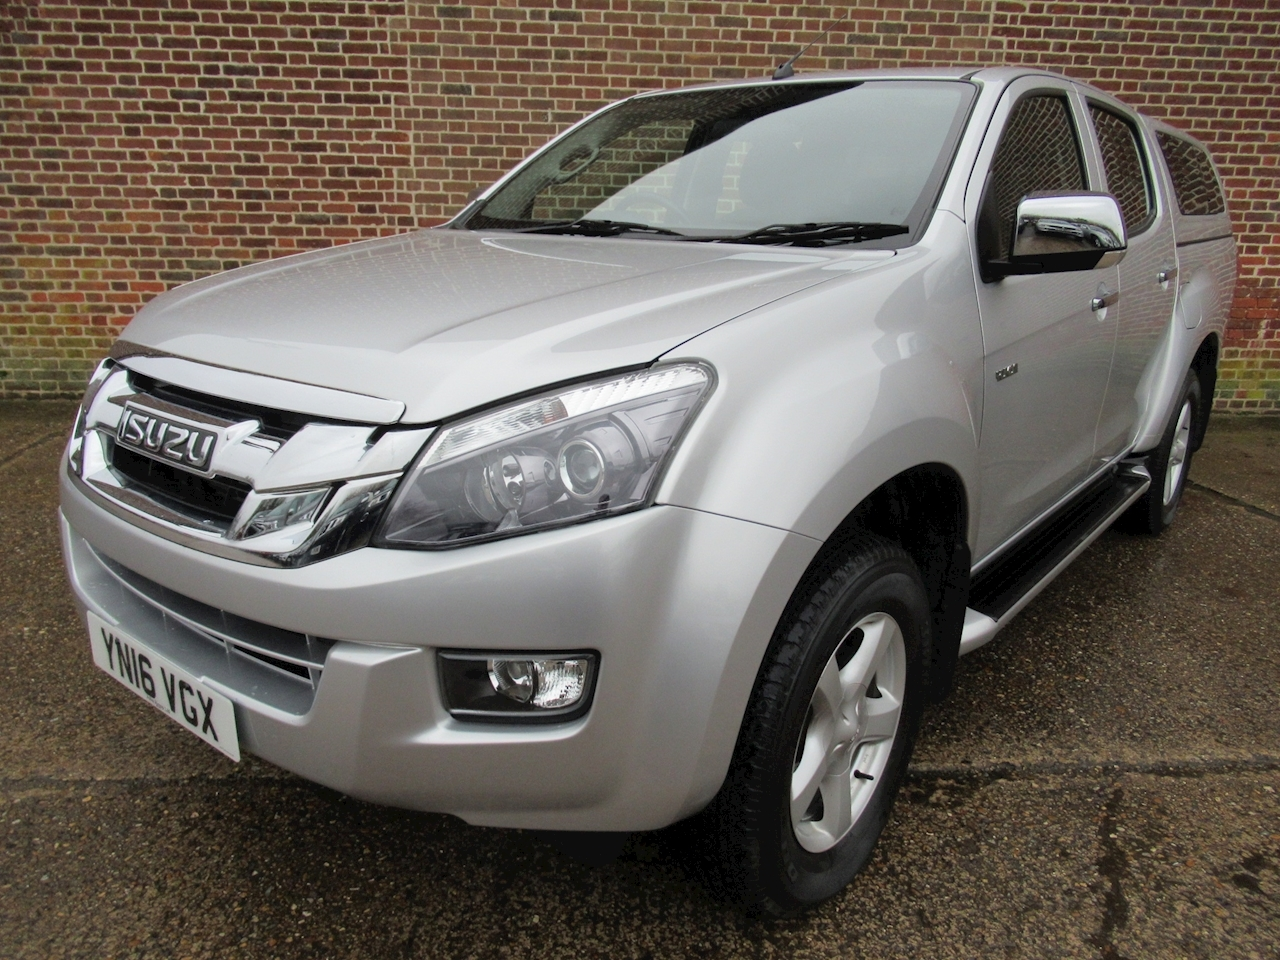 Isuzu D-Max Td Yukon Dcb 2.5 4dr Pick-Up Manual Diesel